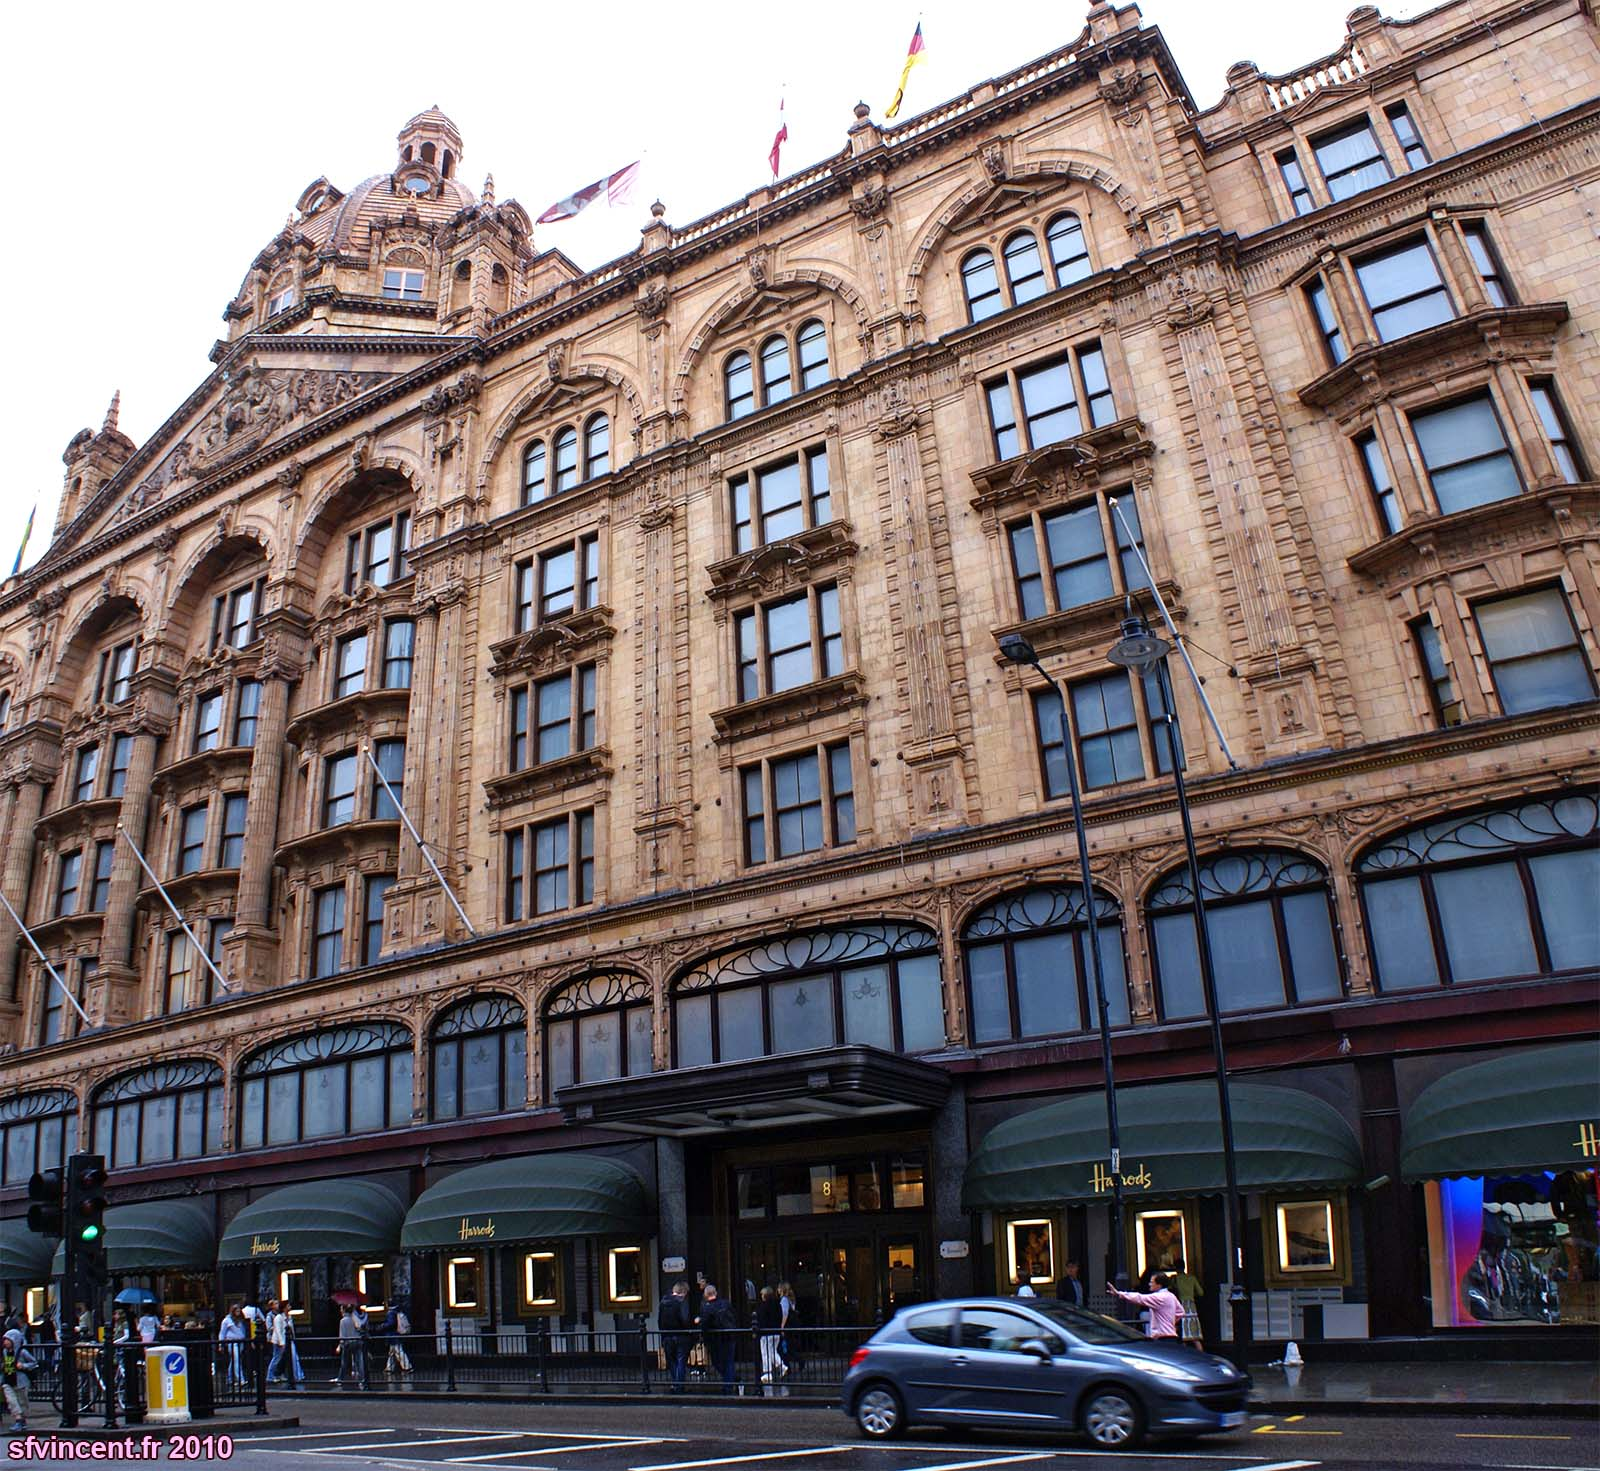 Grand magasin harrods londres avant m me d 39 entrer l 39 architecture - Grand magasin de jouet londres ...